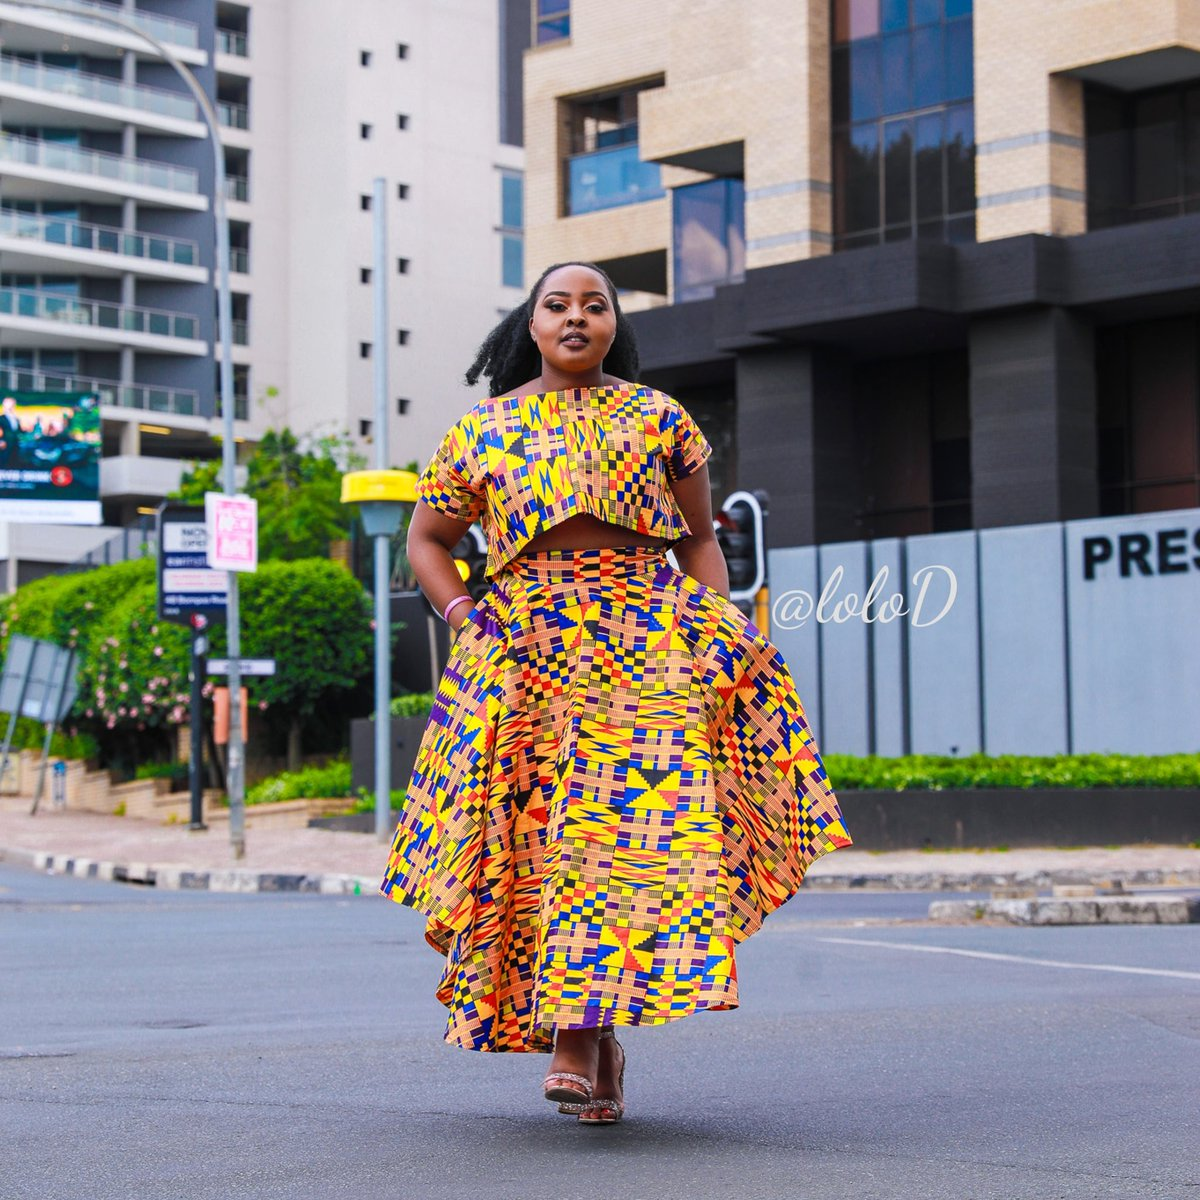 Her soul is fierce. Her heart is brave. Her mind is strong.  LoloD range available at YDE Sandton City and Mall Of Africa. Alternatively DM for oder #lolod #lolodcouture #africanprint #ankara #africanfashion #ankarafashion  #MondayMotivationpic.twitter.com/BlkjtqSc2t